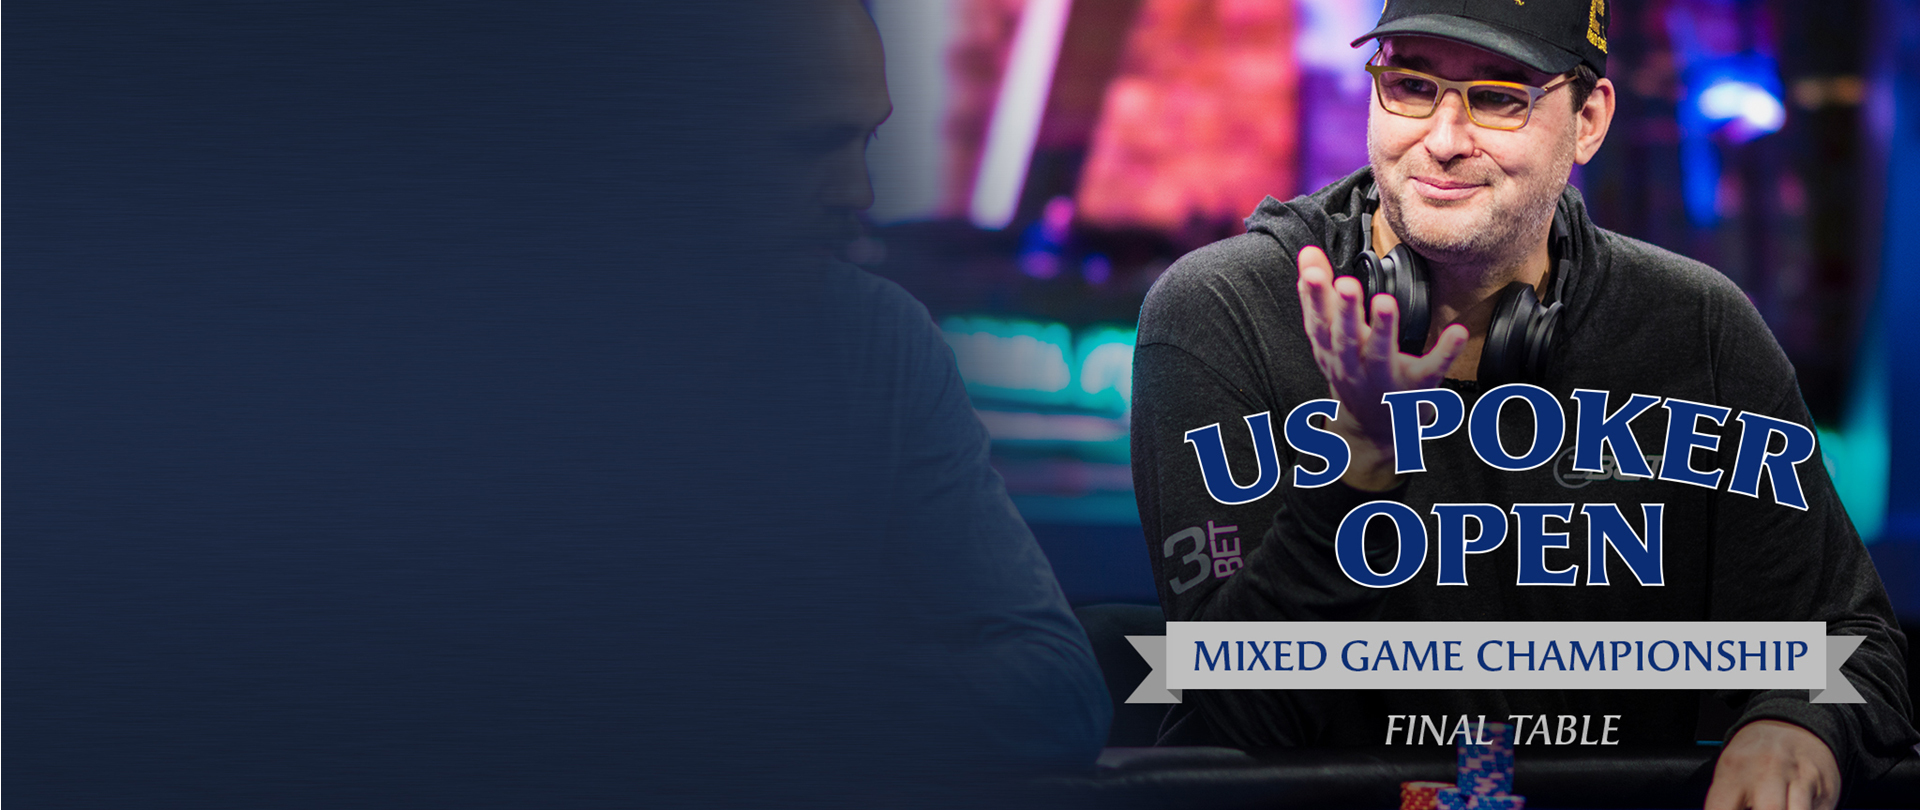 U.S. Poker Open 2018 | Event #4 Mixed Game Championship | Final Table